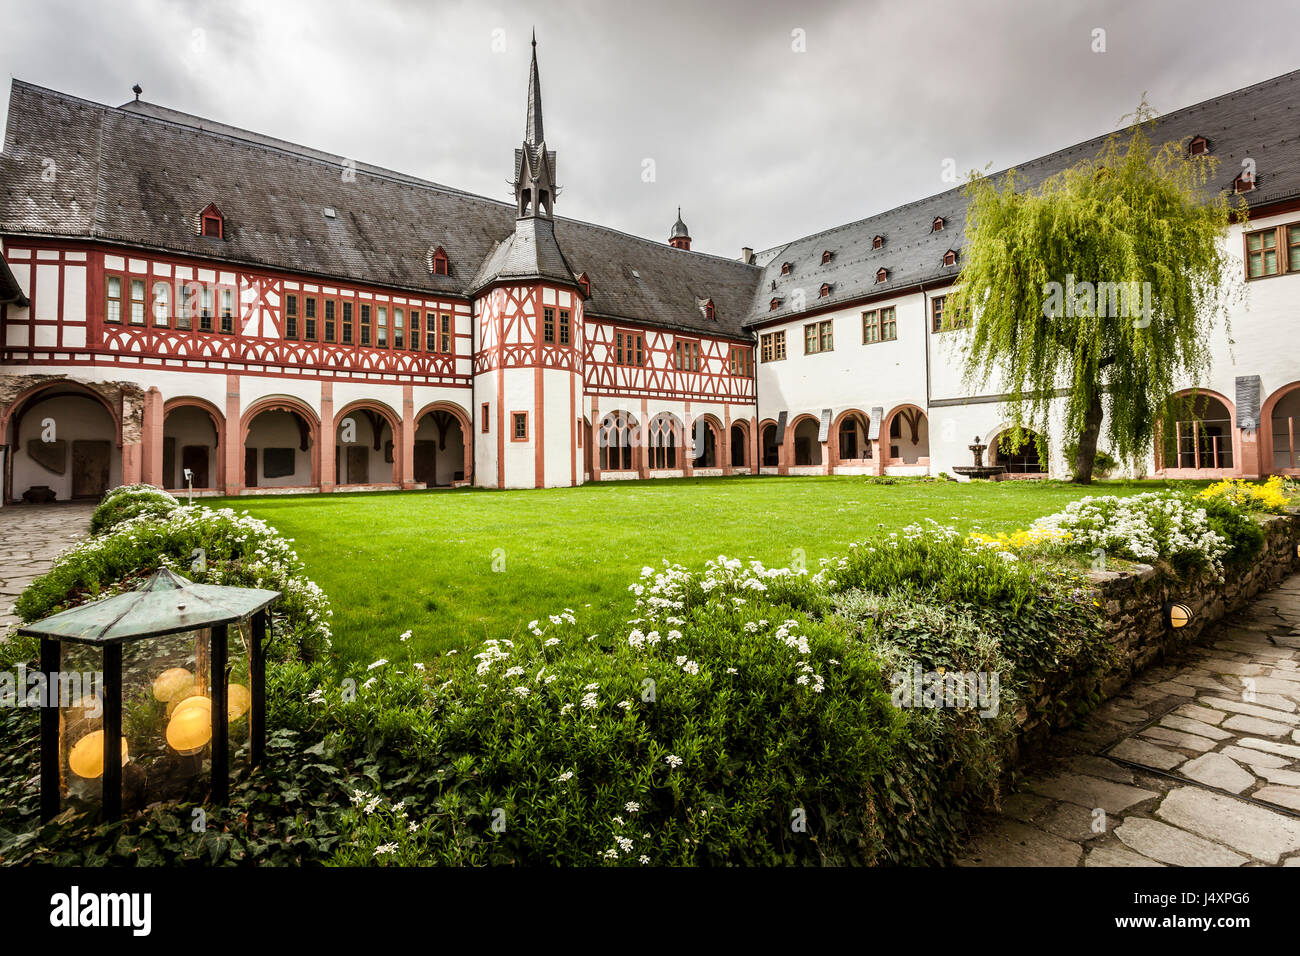 blick auf das kloster eberbach kloster eltville am rhein rheingau hessen deutschland stockfoto. Black Bedroom Furniture Sets. Home Design Ideas